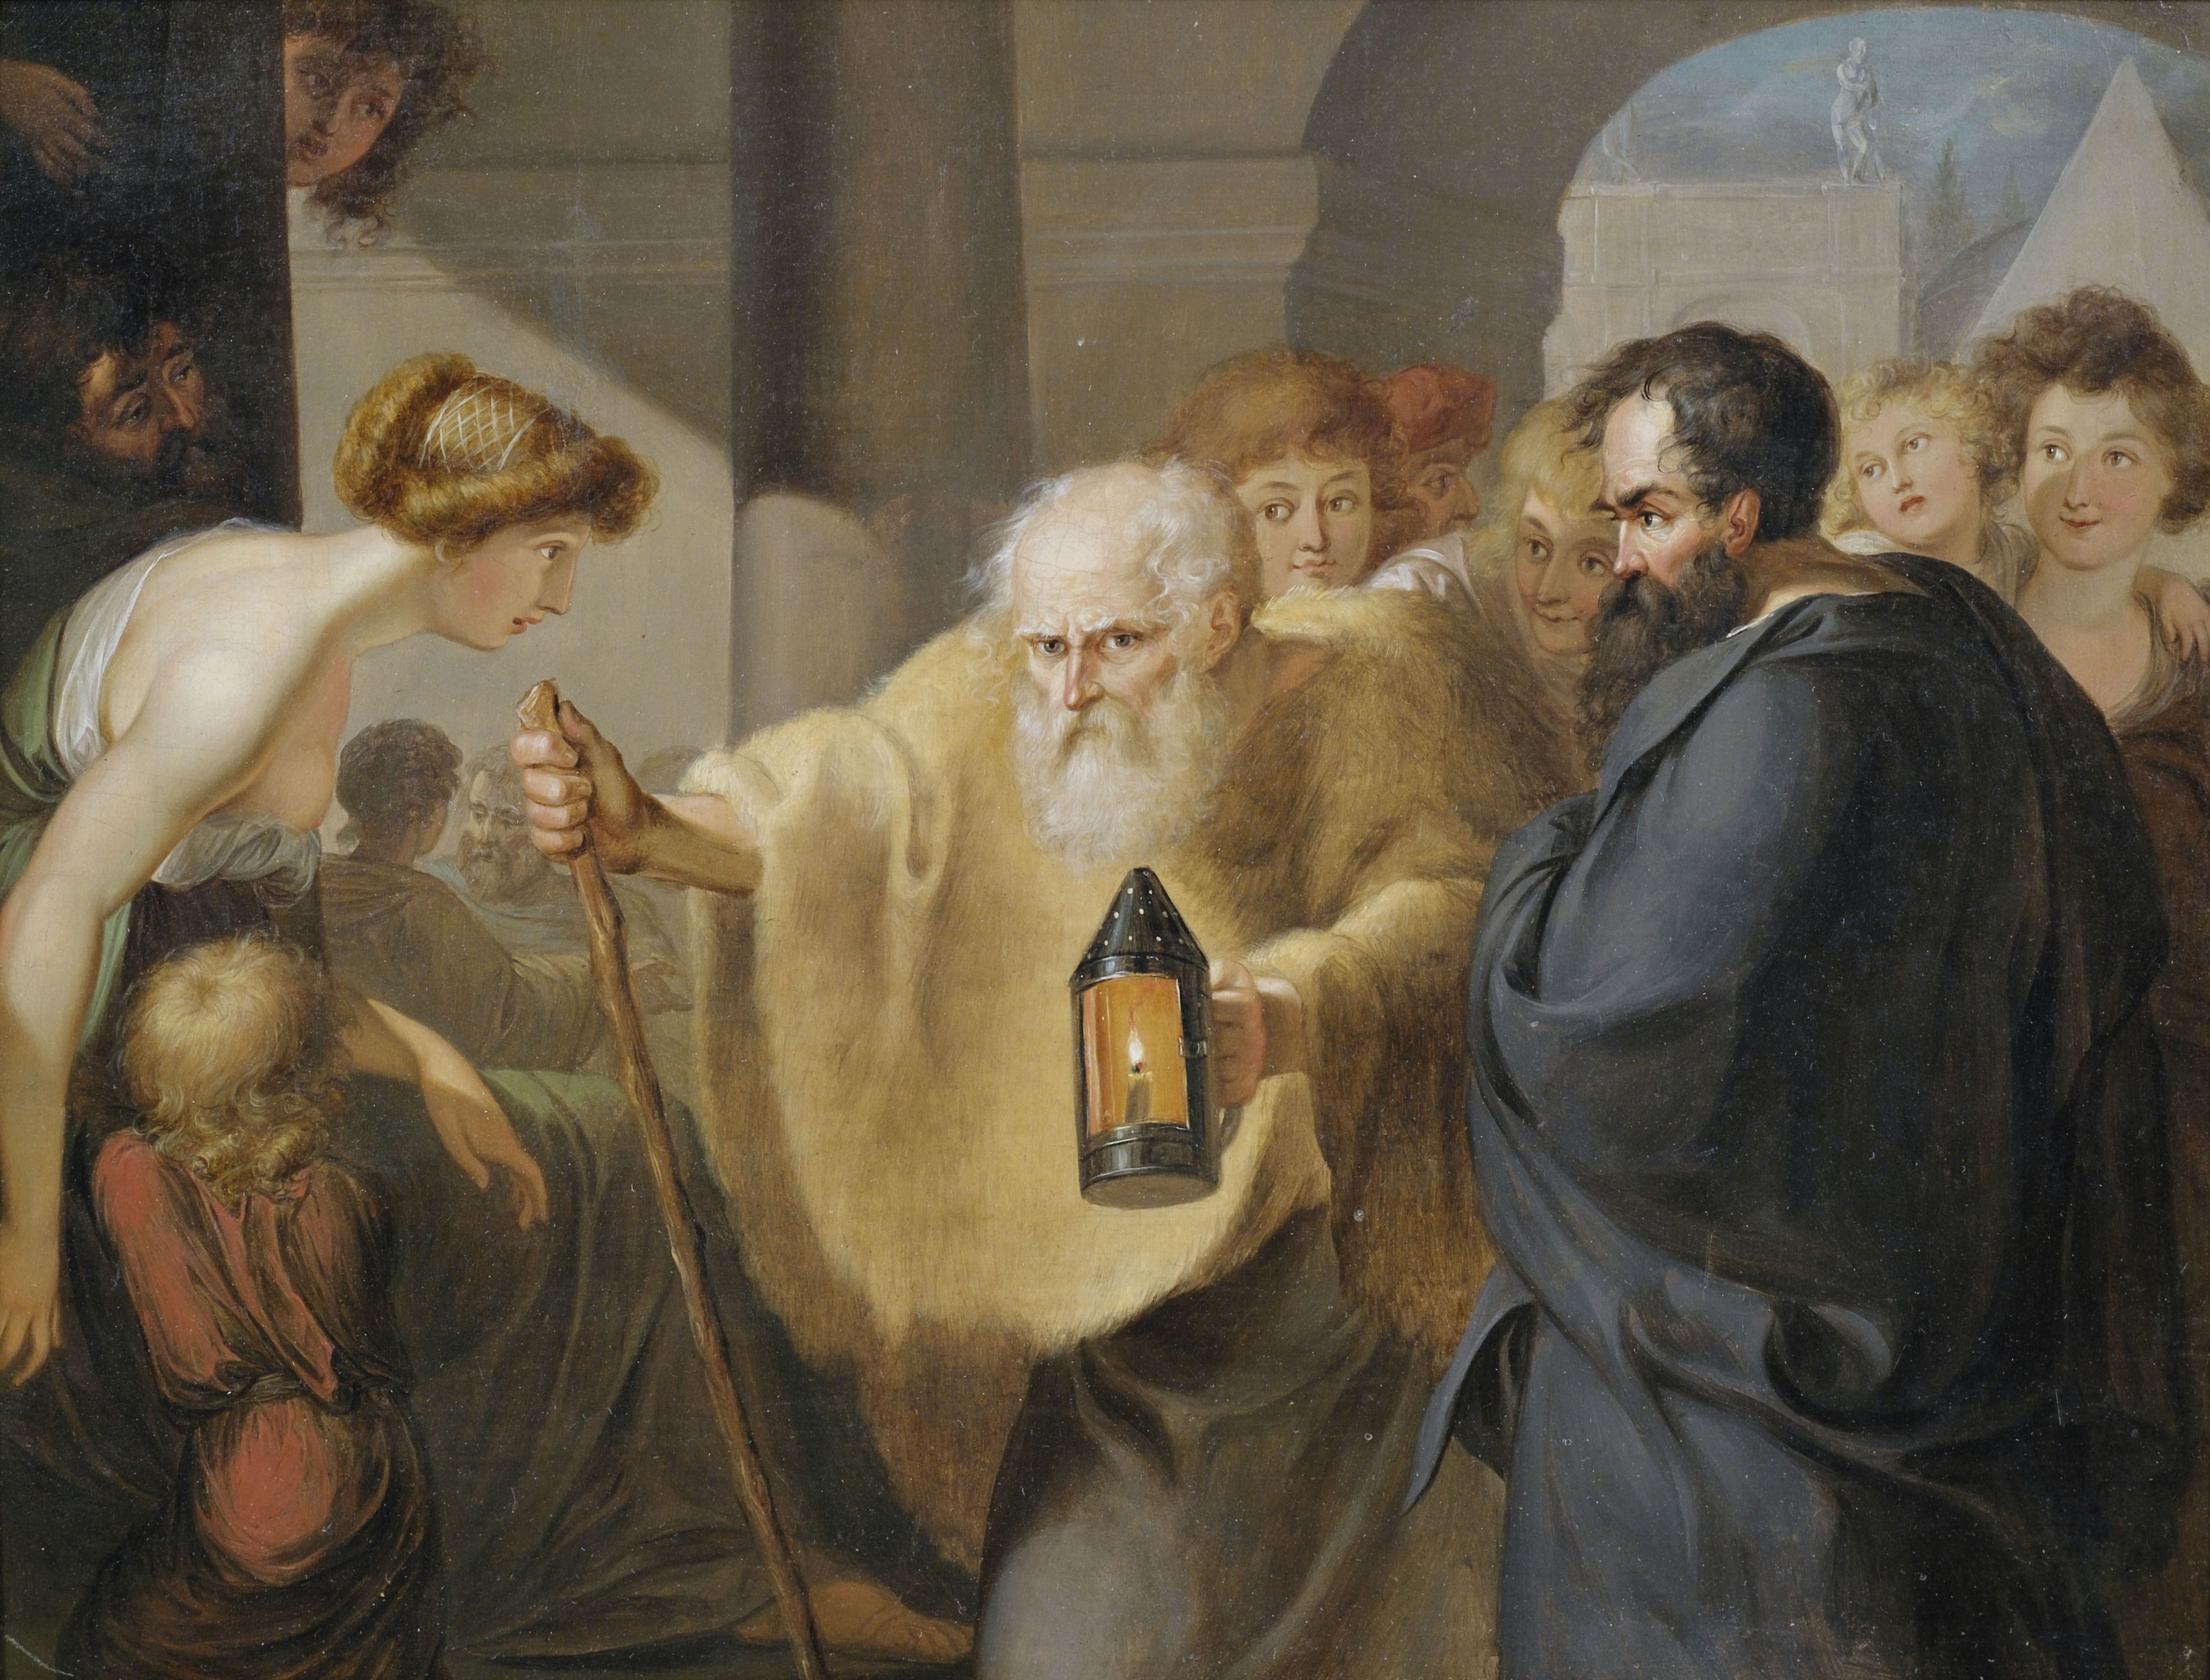 Diogenes searching for honest policies   CFACT